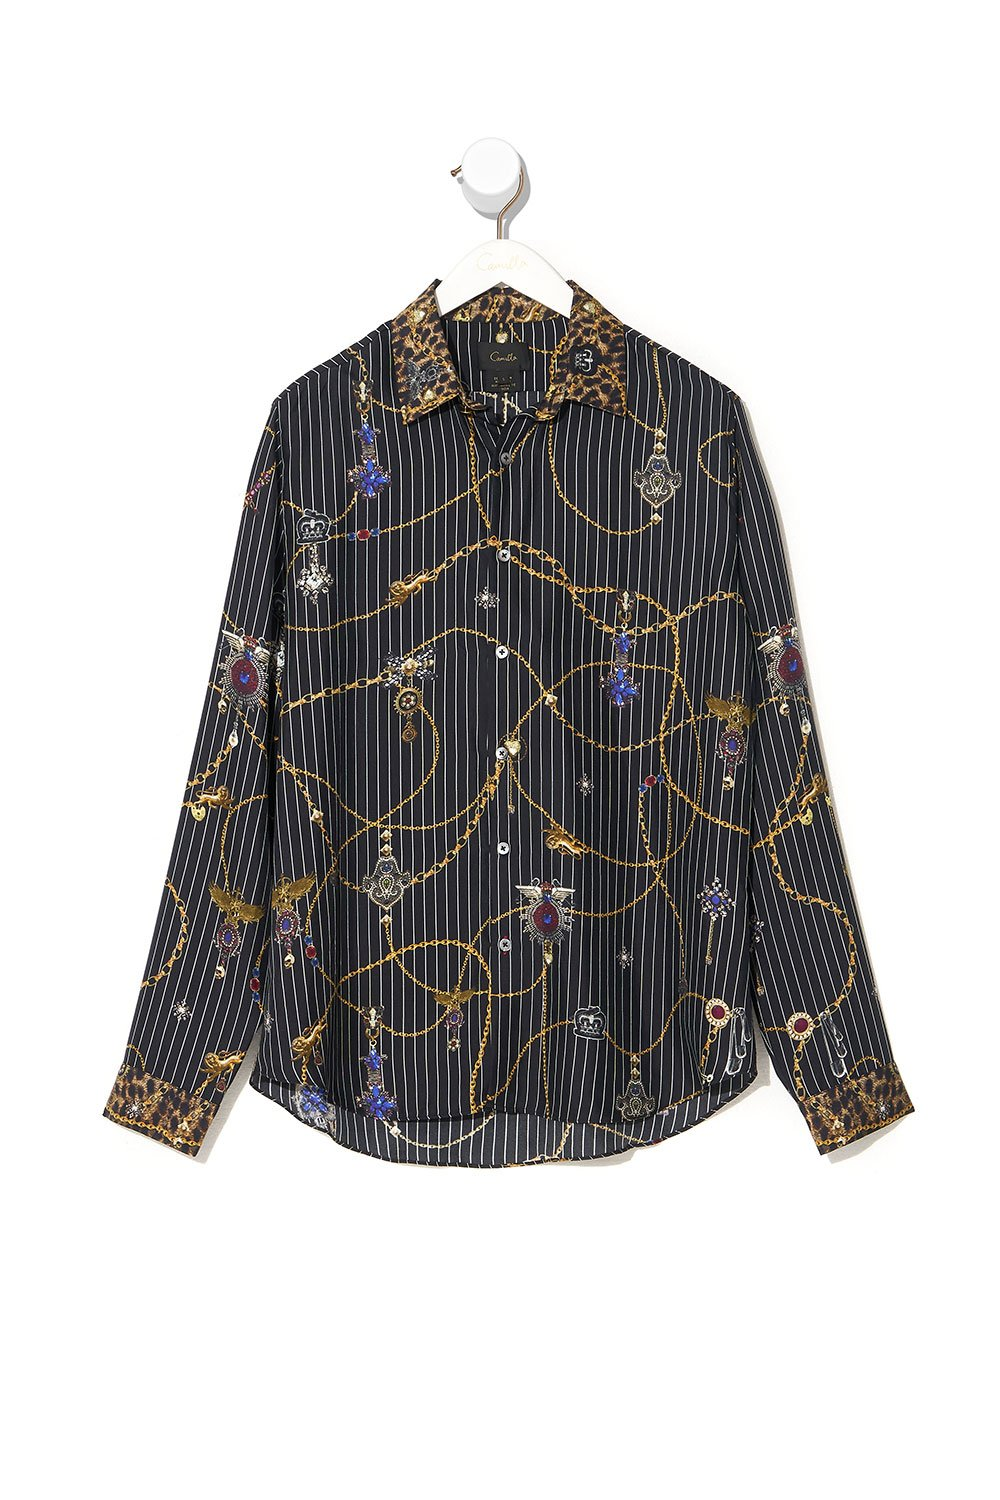 COLLARED LONG SLEEVE SHIRT PUNK OF PRIMROSE